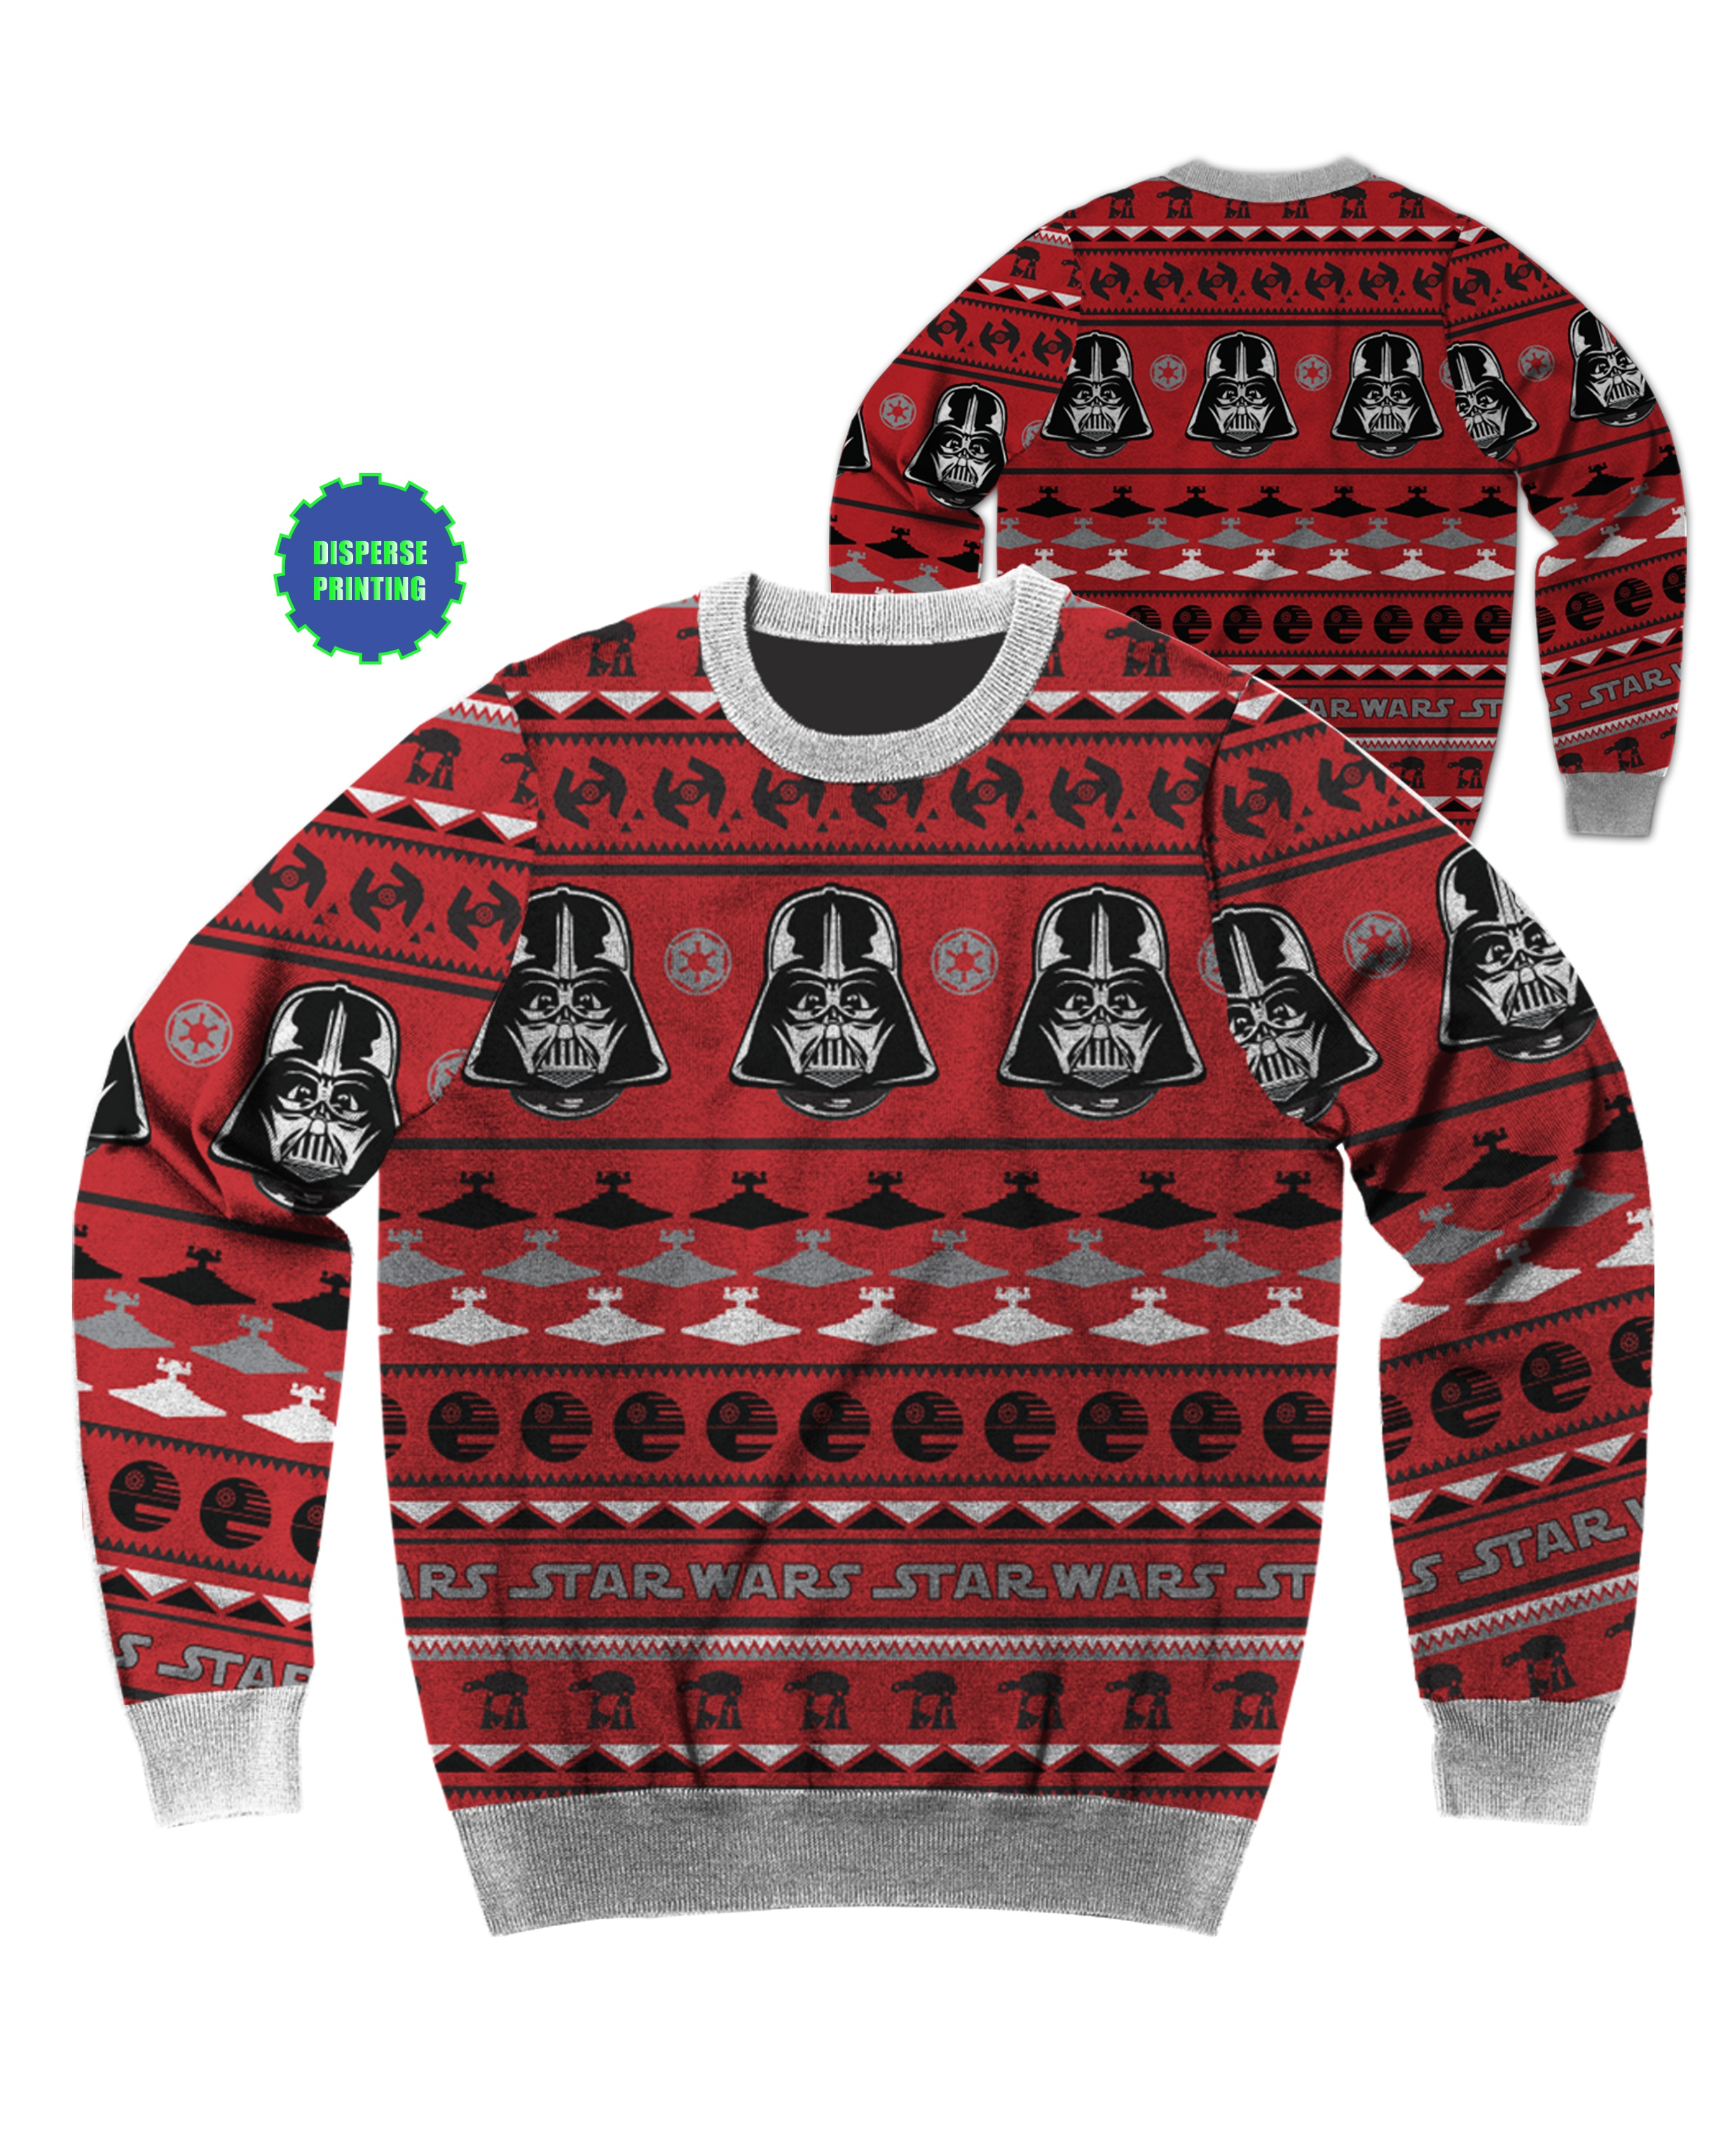 mad engine star wars patterned darth vader ugly christmas sweater x large walmartcom - Ugly Christmas Sweater Star Wars